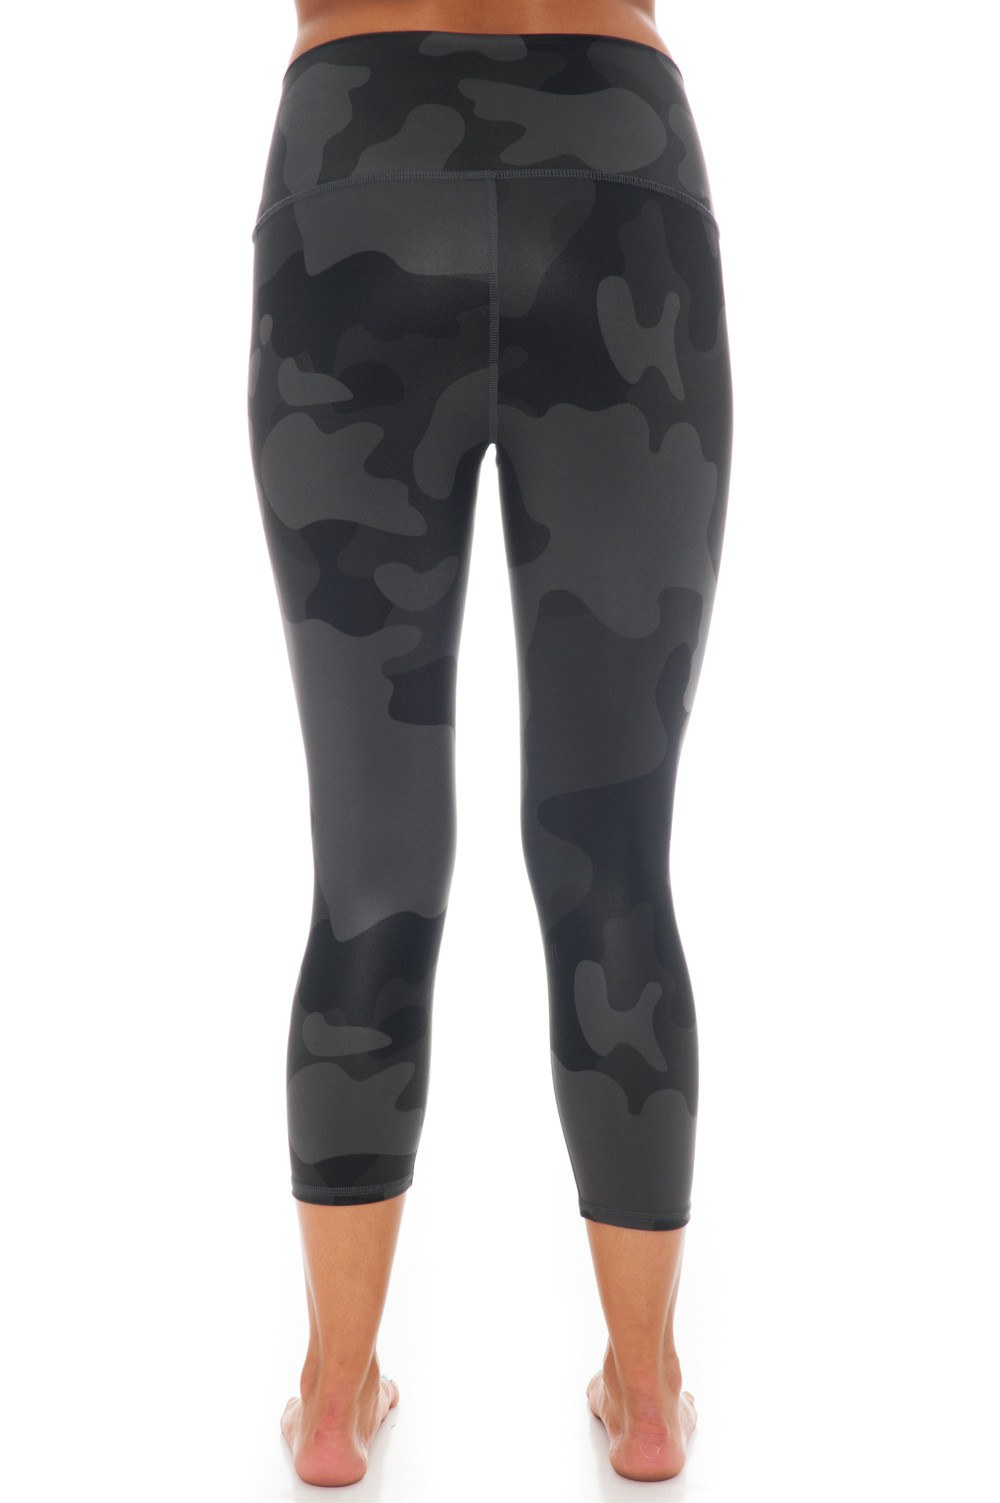 Legging - Alo High Waist Airbrush - 3